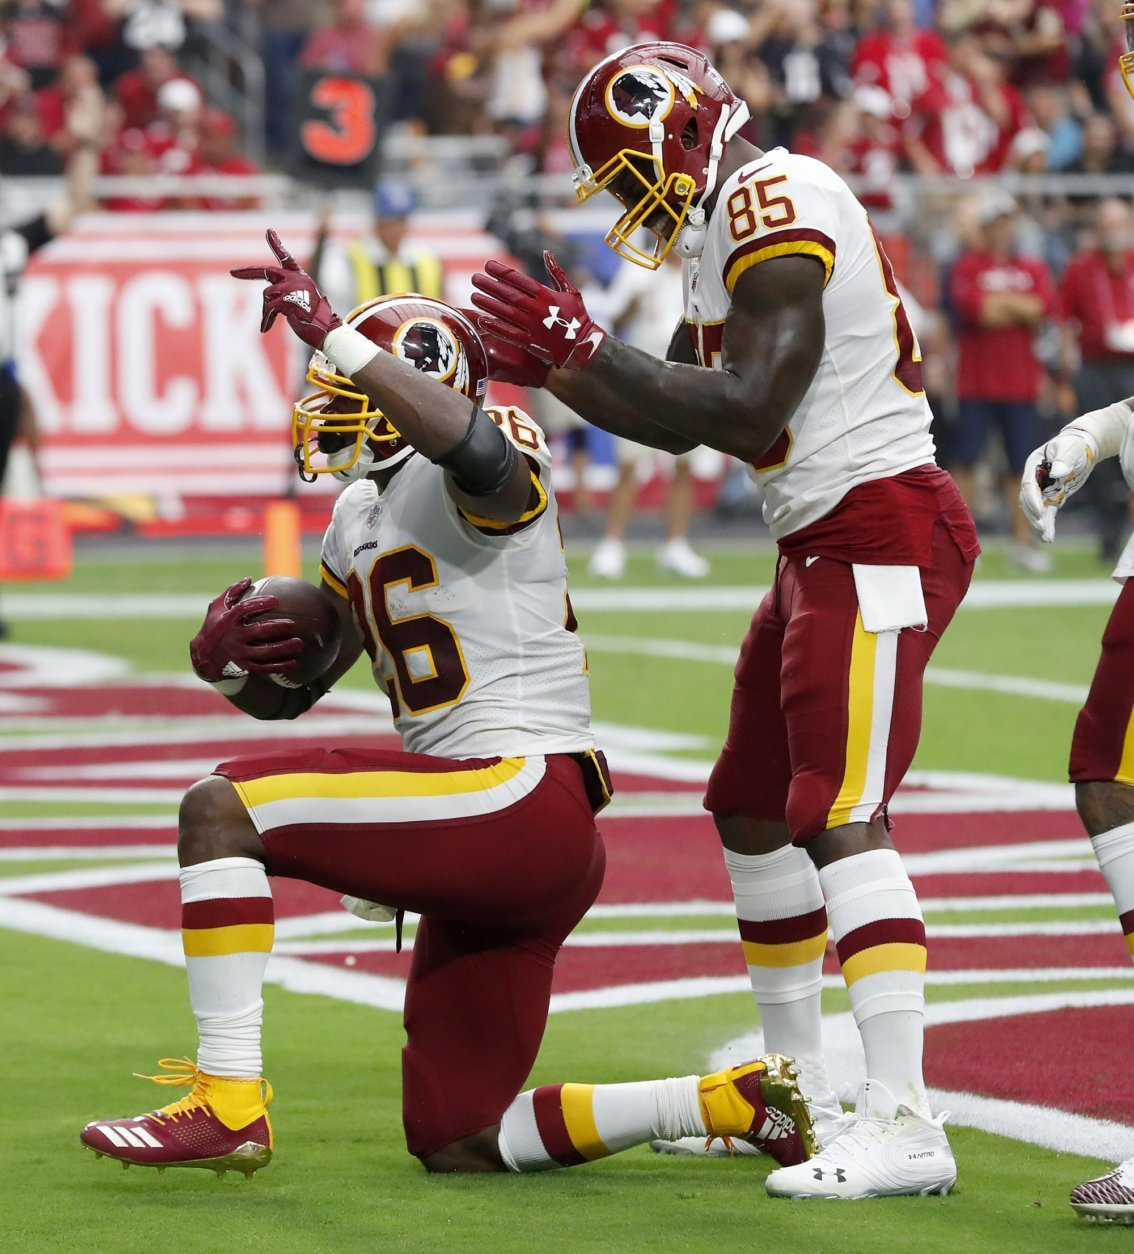 Washington Redskins running back Adrian Peterson (26) celebrates his touchdown against the Arizona Cardinals with tight end Vernon Davis (85) during the first half of an NFL football game, Sunday, Sept. 9, 2018, in Glendale, Ariz. (AP Photo/Rick Scuteri)